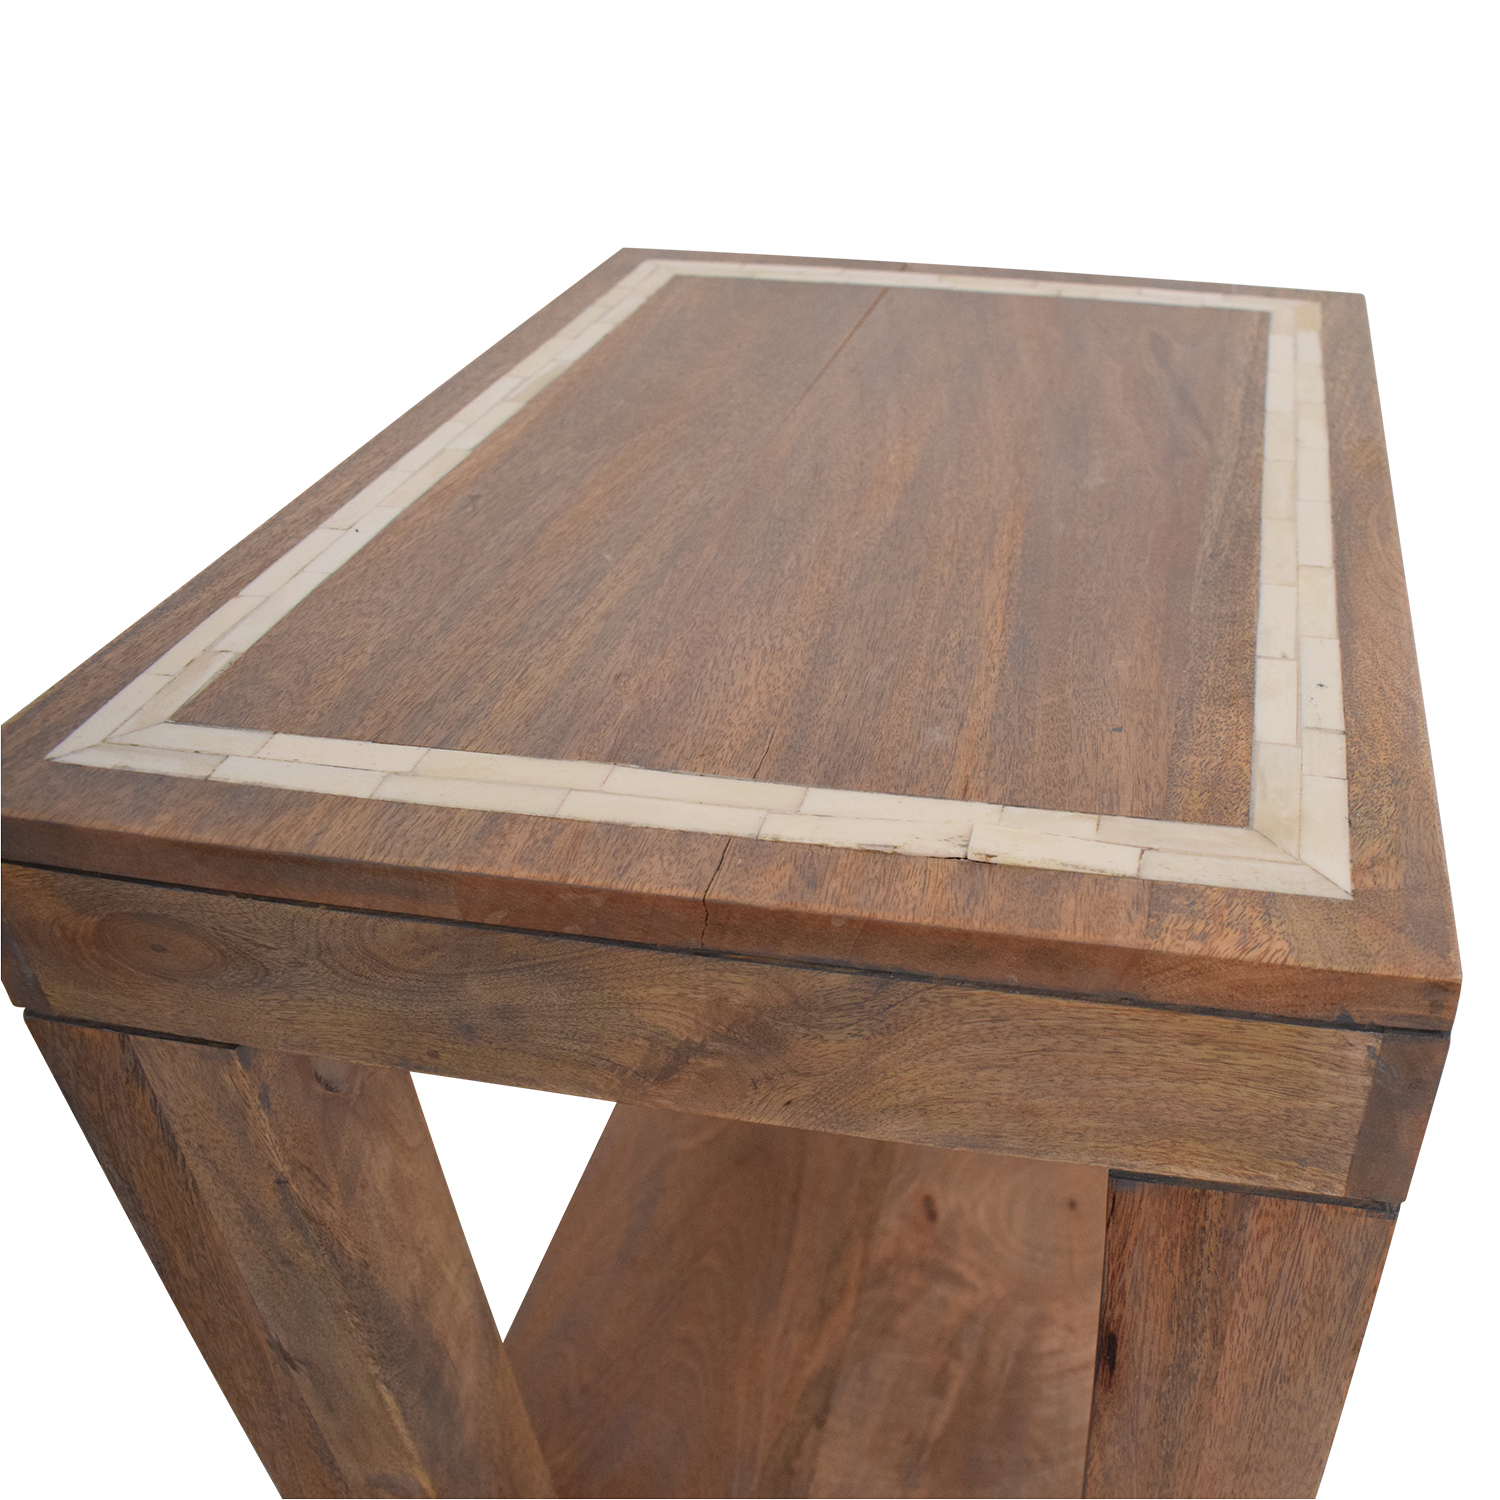 West Elm West Elm Parsons End Table price